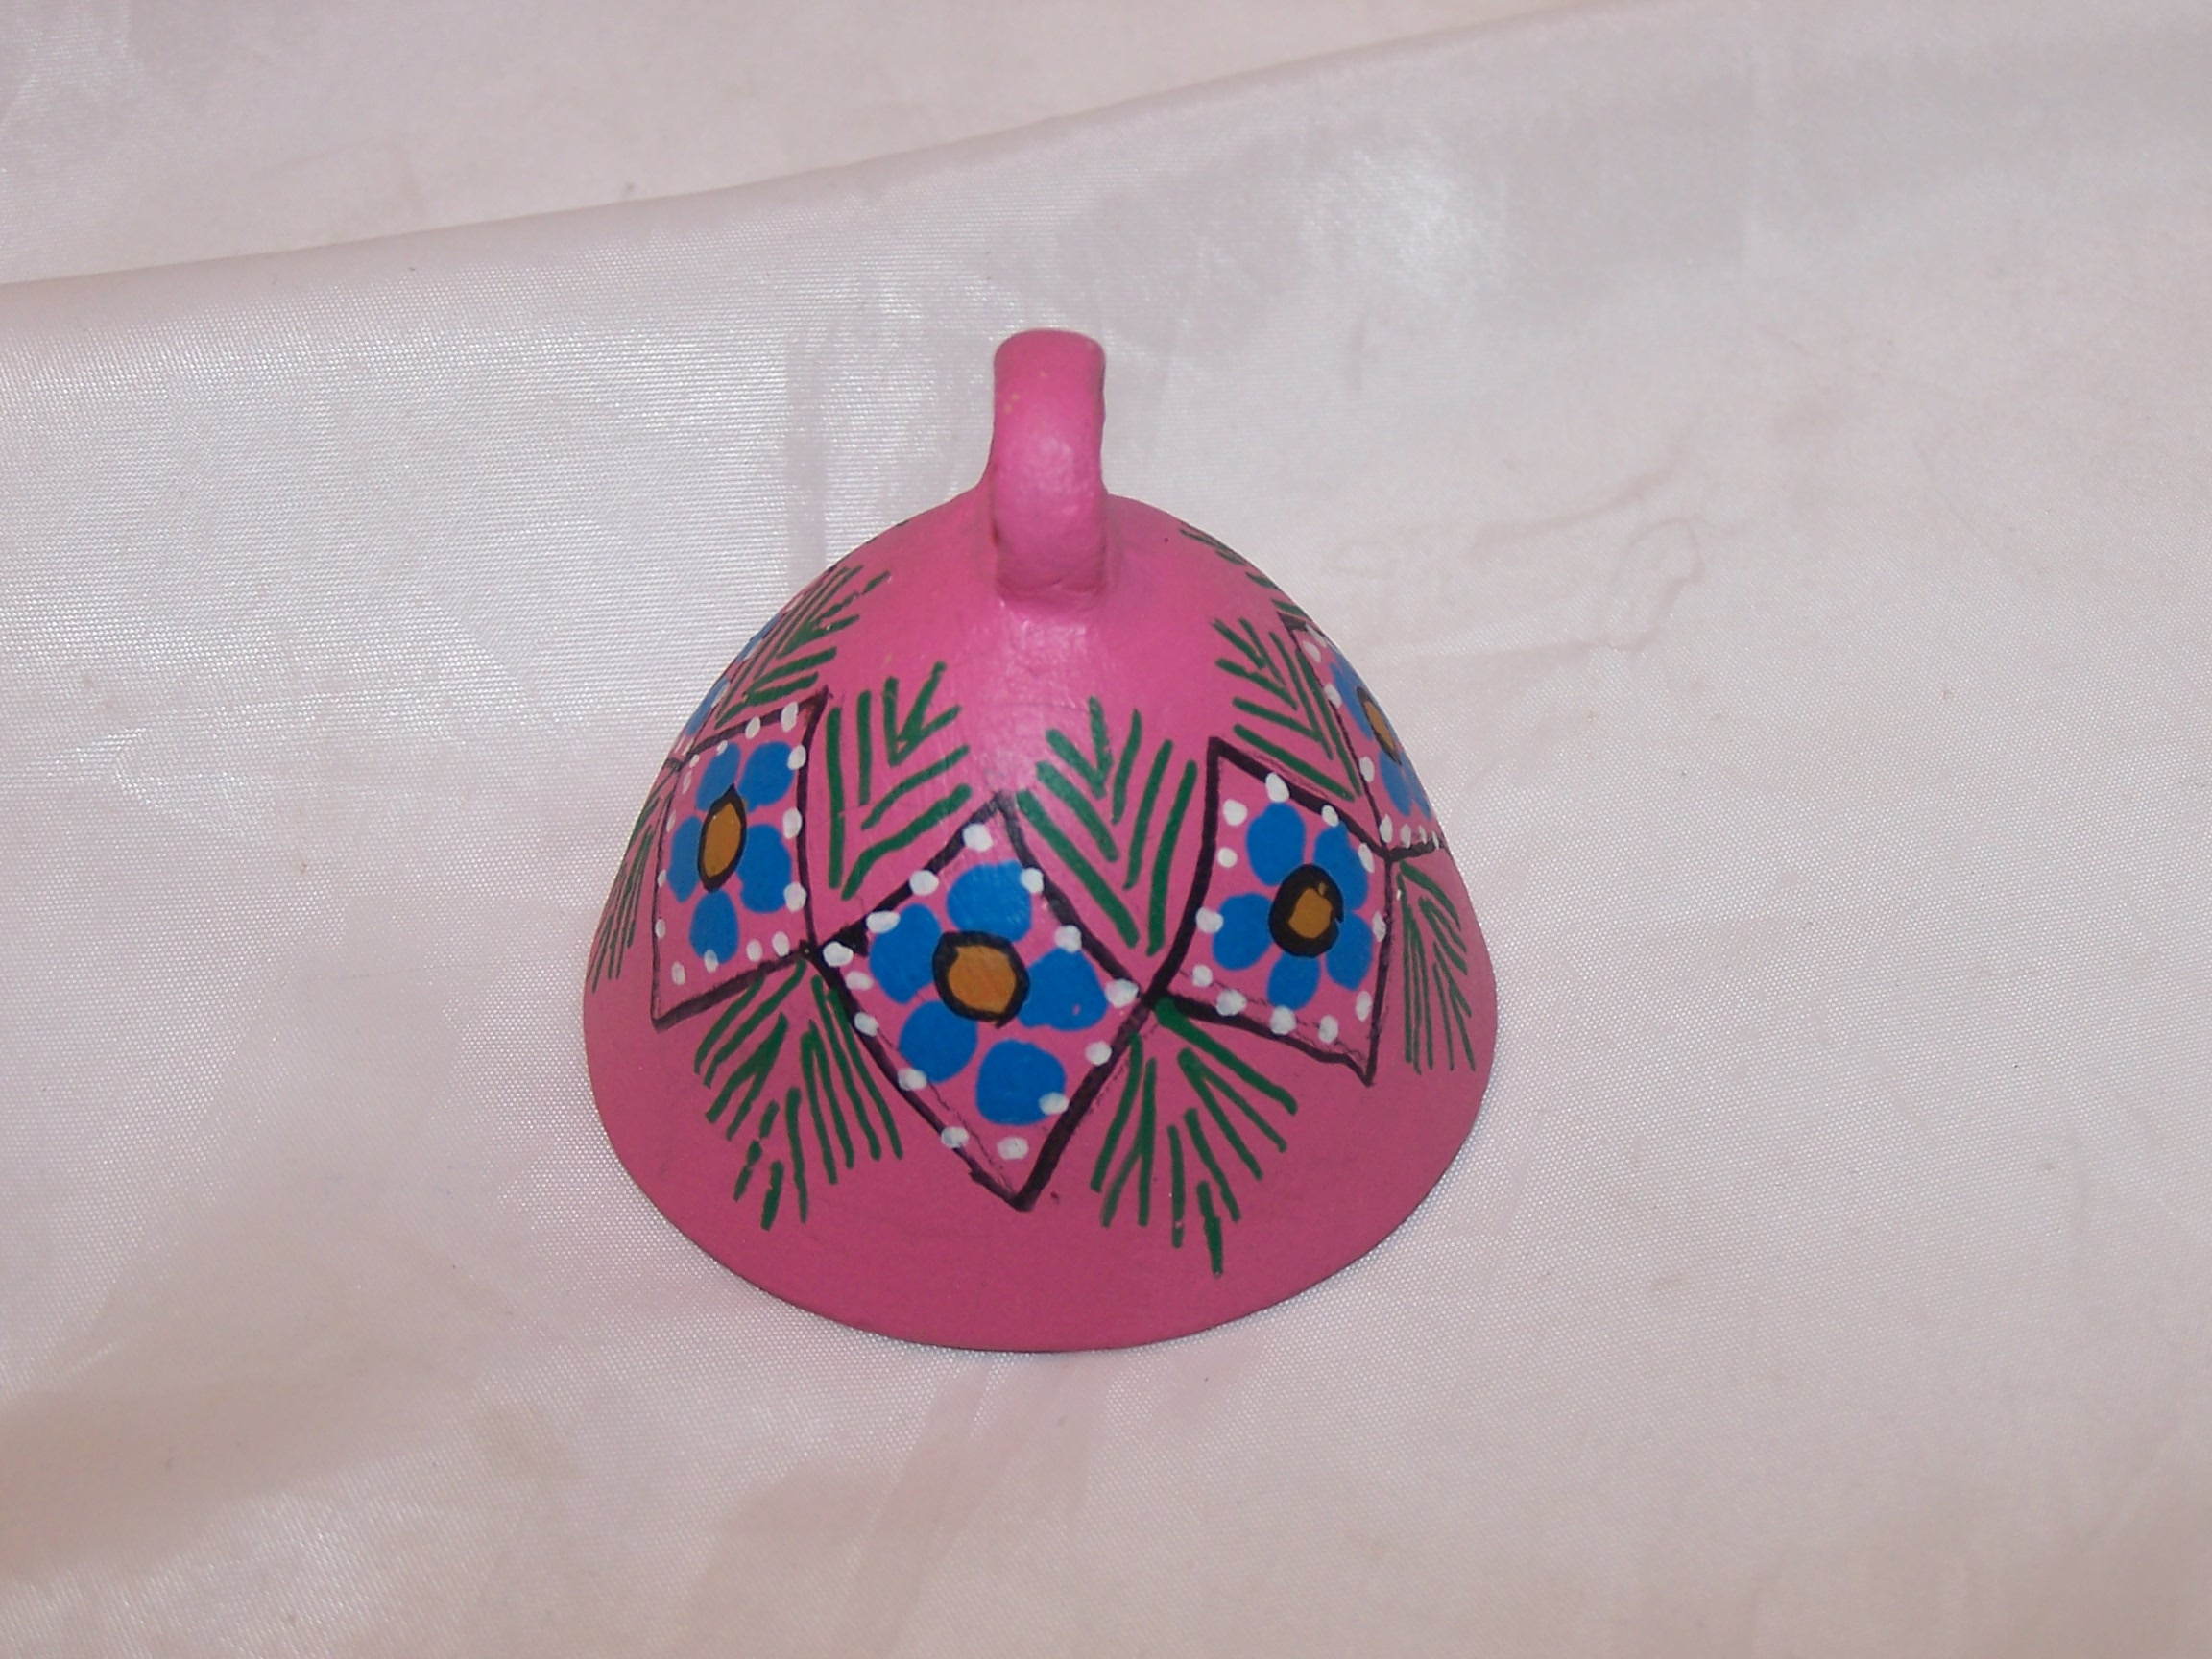 Image 1 of Floral Clay Bell, Oaxaca, Mexico, Hand Crafted, Painted